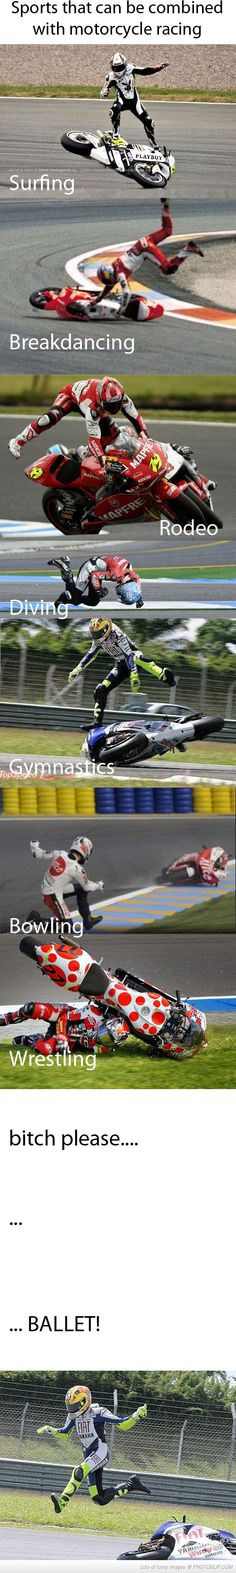 Funny pictures about Sports that can be combined with motorcycle racing. Oh, and cool pics about Sports that can be combined with motorcycle racing. Also, Sports that can be combined with motorcycle racing photos. Really Funny Memes, Stupid Funny Memes, Funny Relatable Memes, Haha Funny, Hilarious, Funny Gifs, Funny Humor, Funny Stuff, Motogp